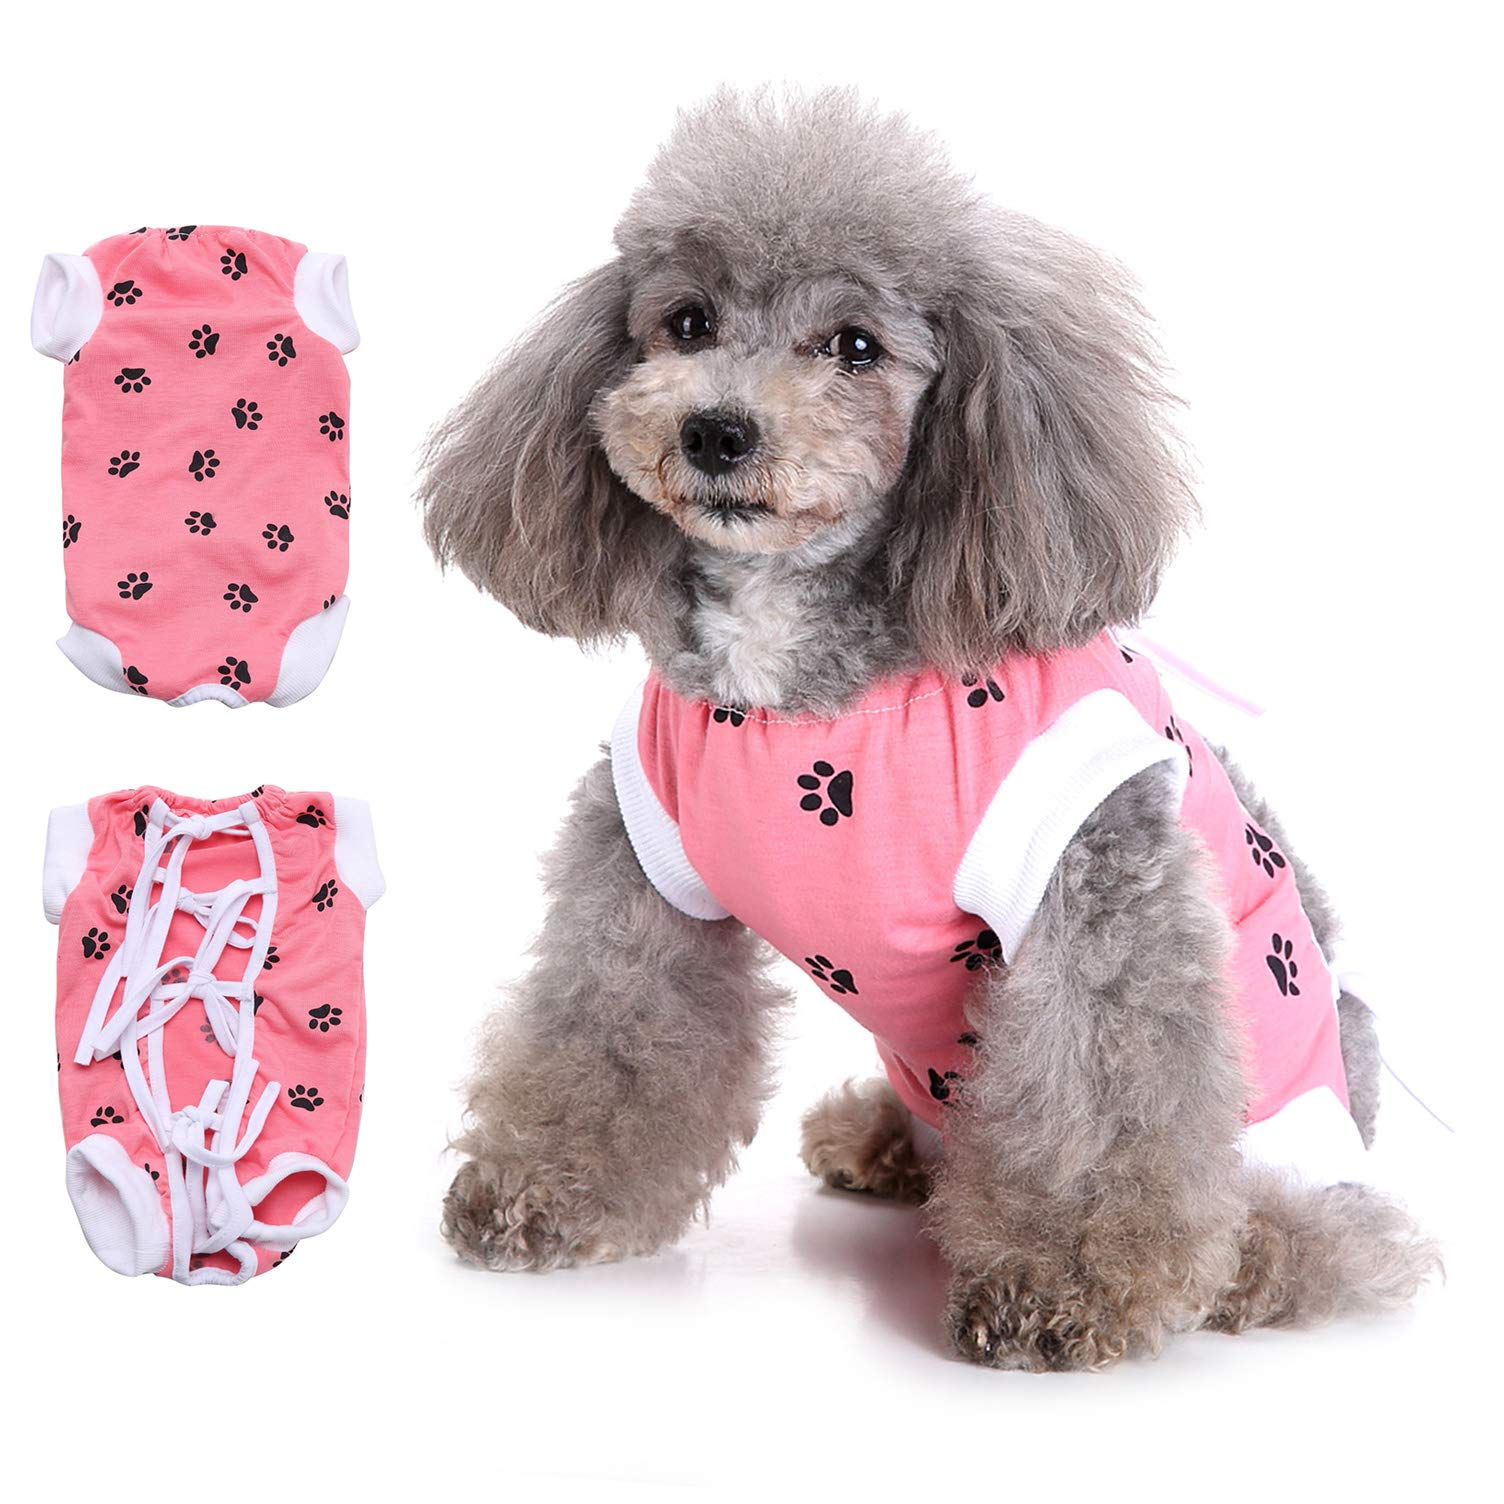 Ranphy Adjustable Dog Recovery Suit Pet Shirt After Surgery Breathable E-Collar Alternative for Abdominal Wounds Skin Diseases After Surgery Wear Anti Licking Wounds Pink Size S by Ranphy